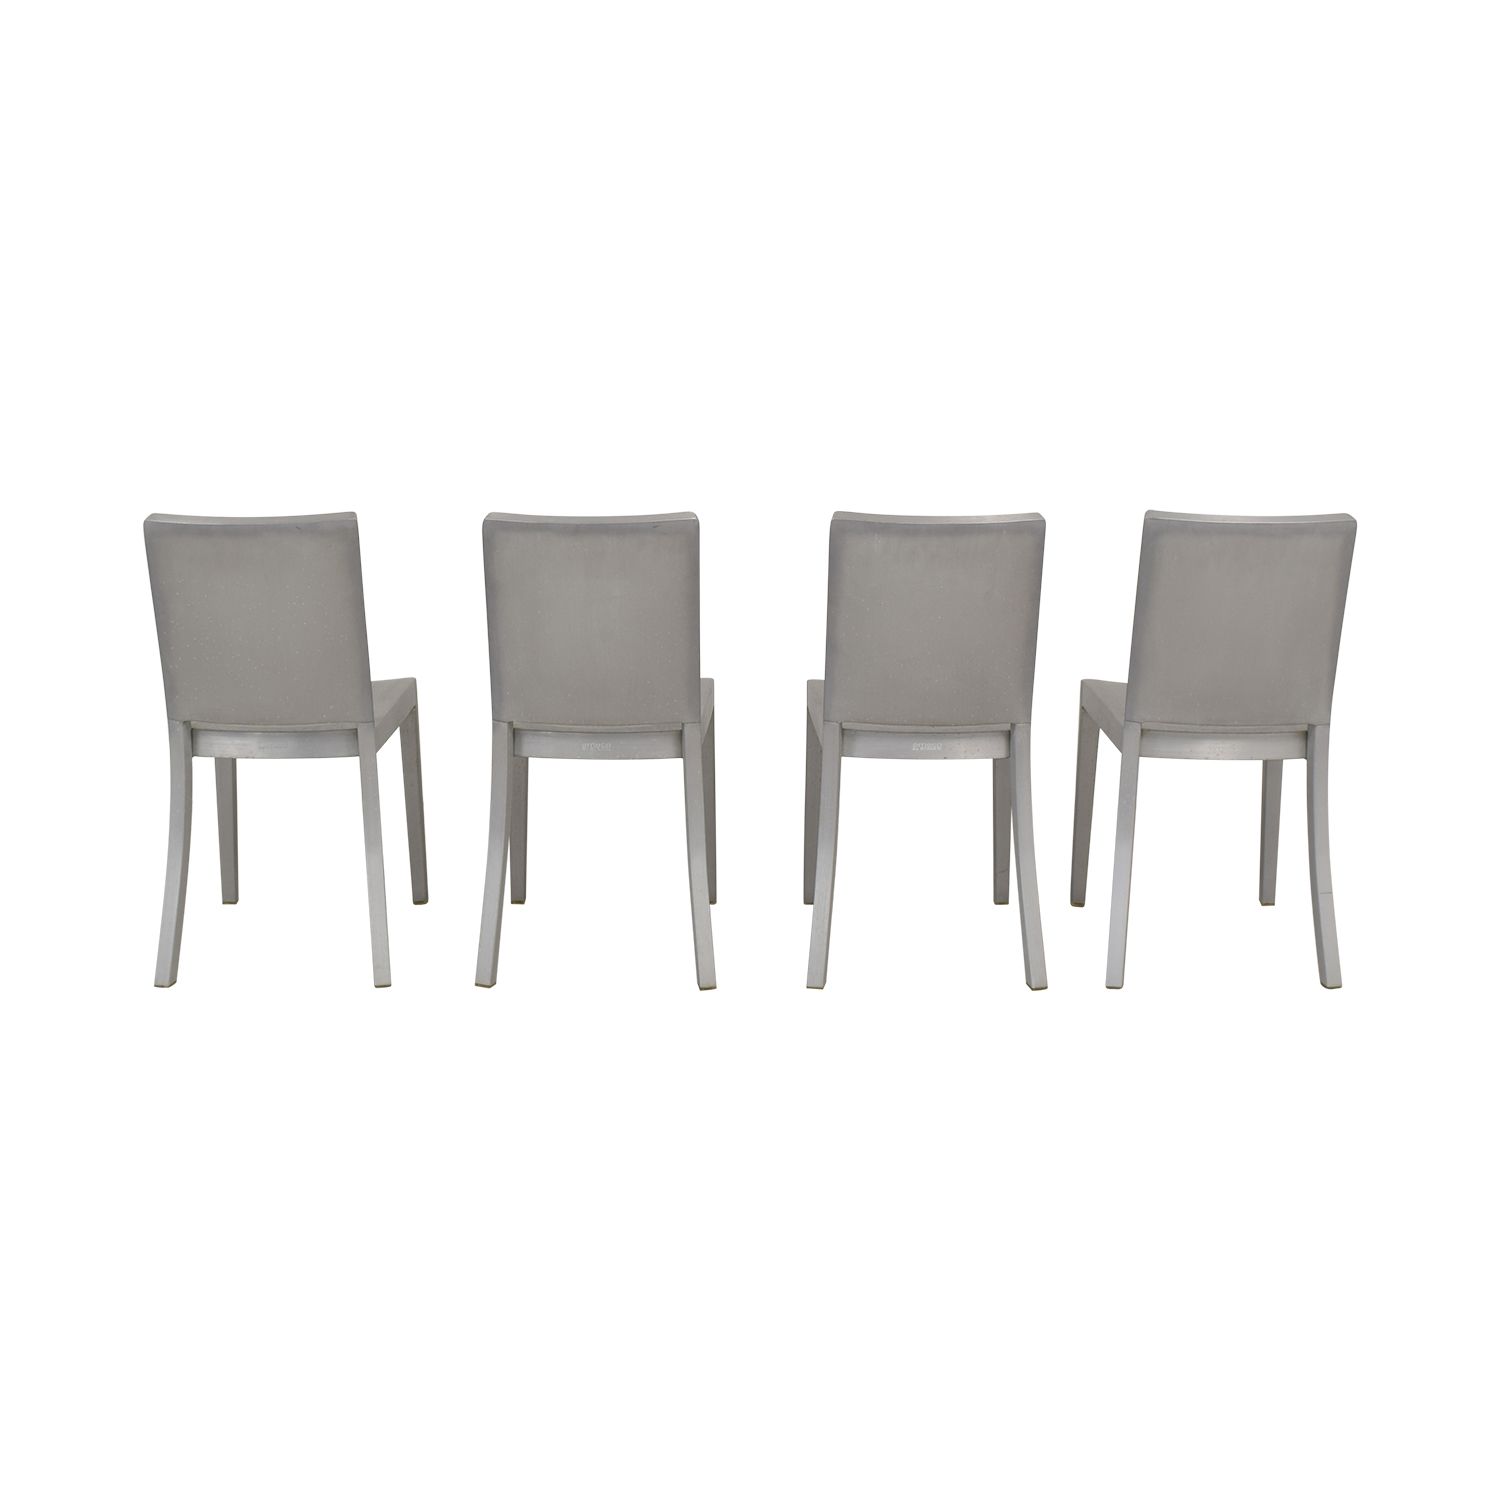 Emeco Emeco by Philippe Starck Hudson Chairs pa